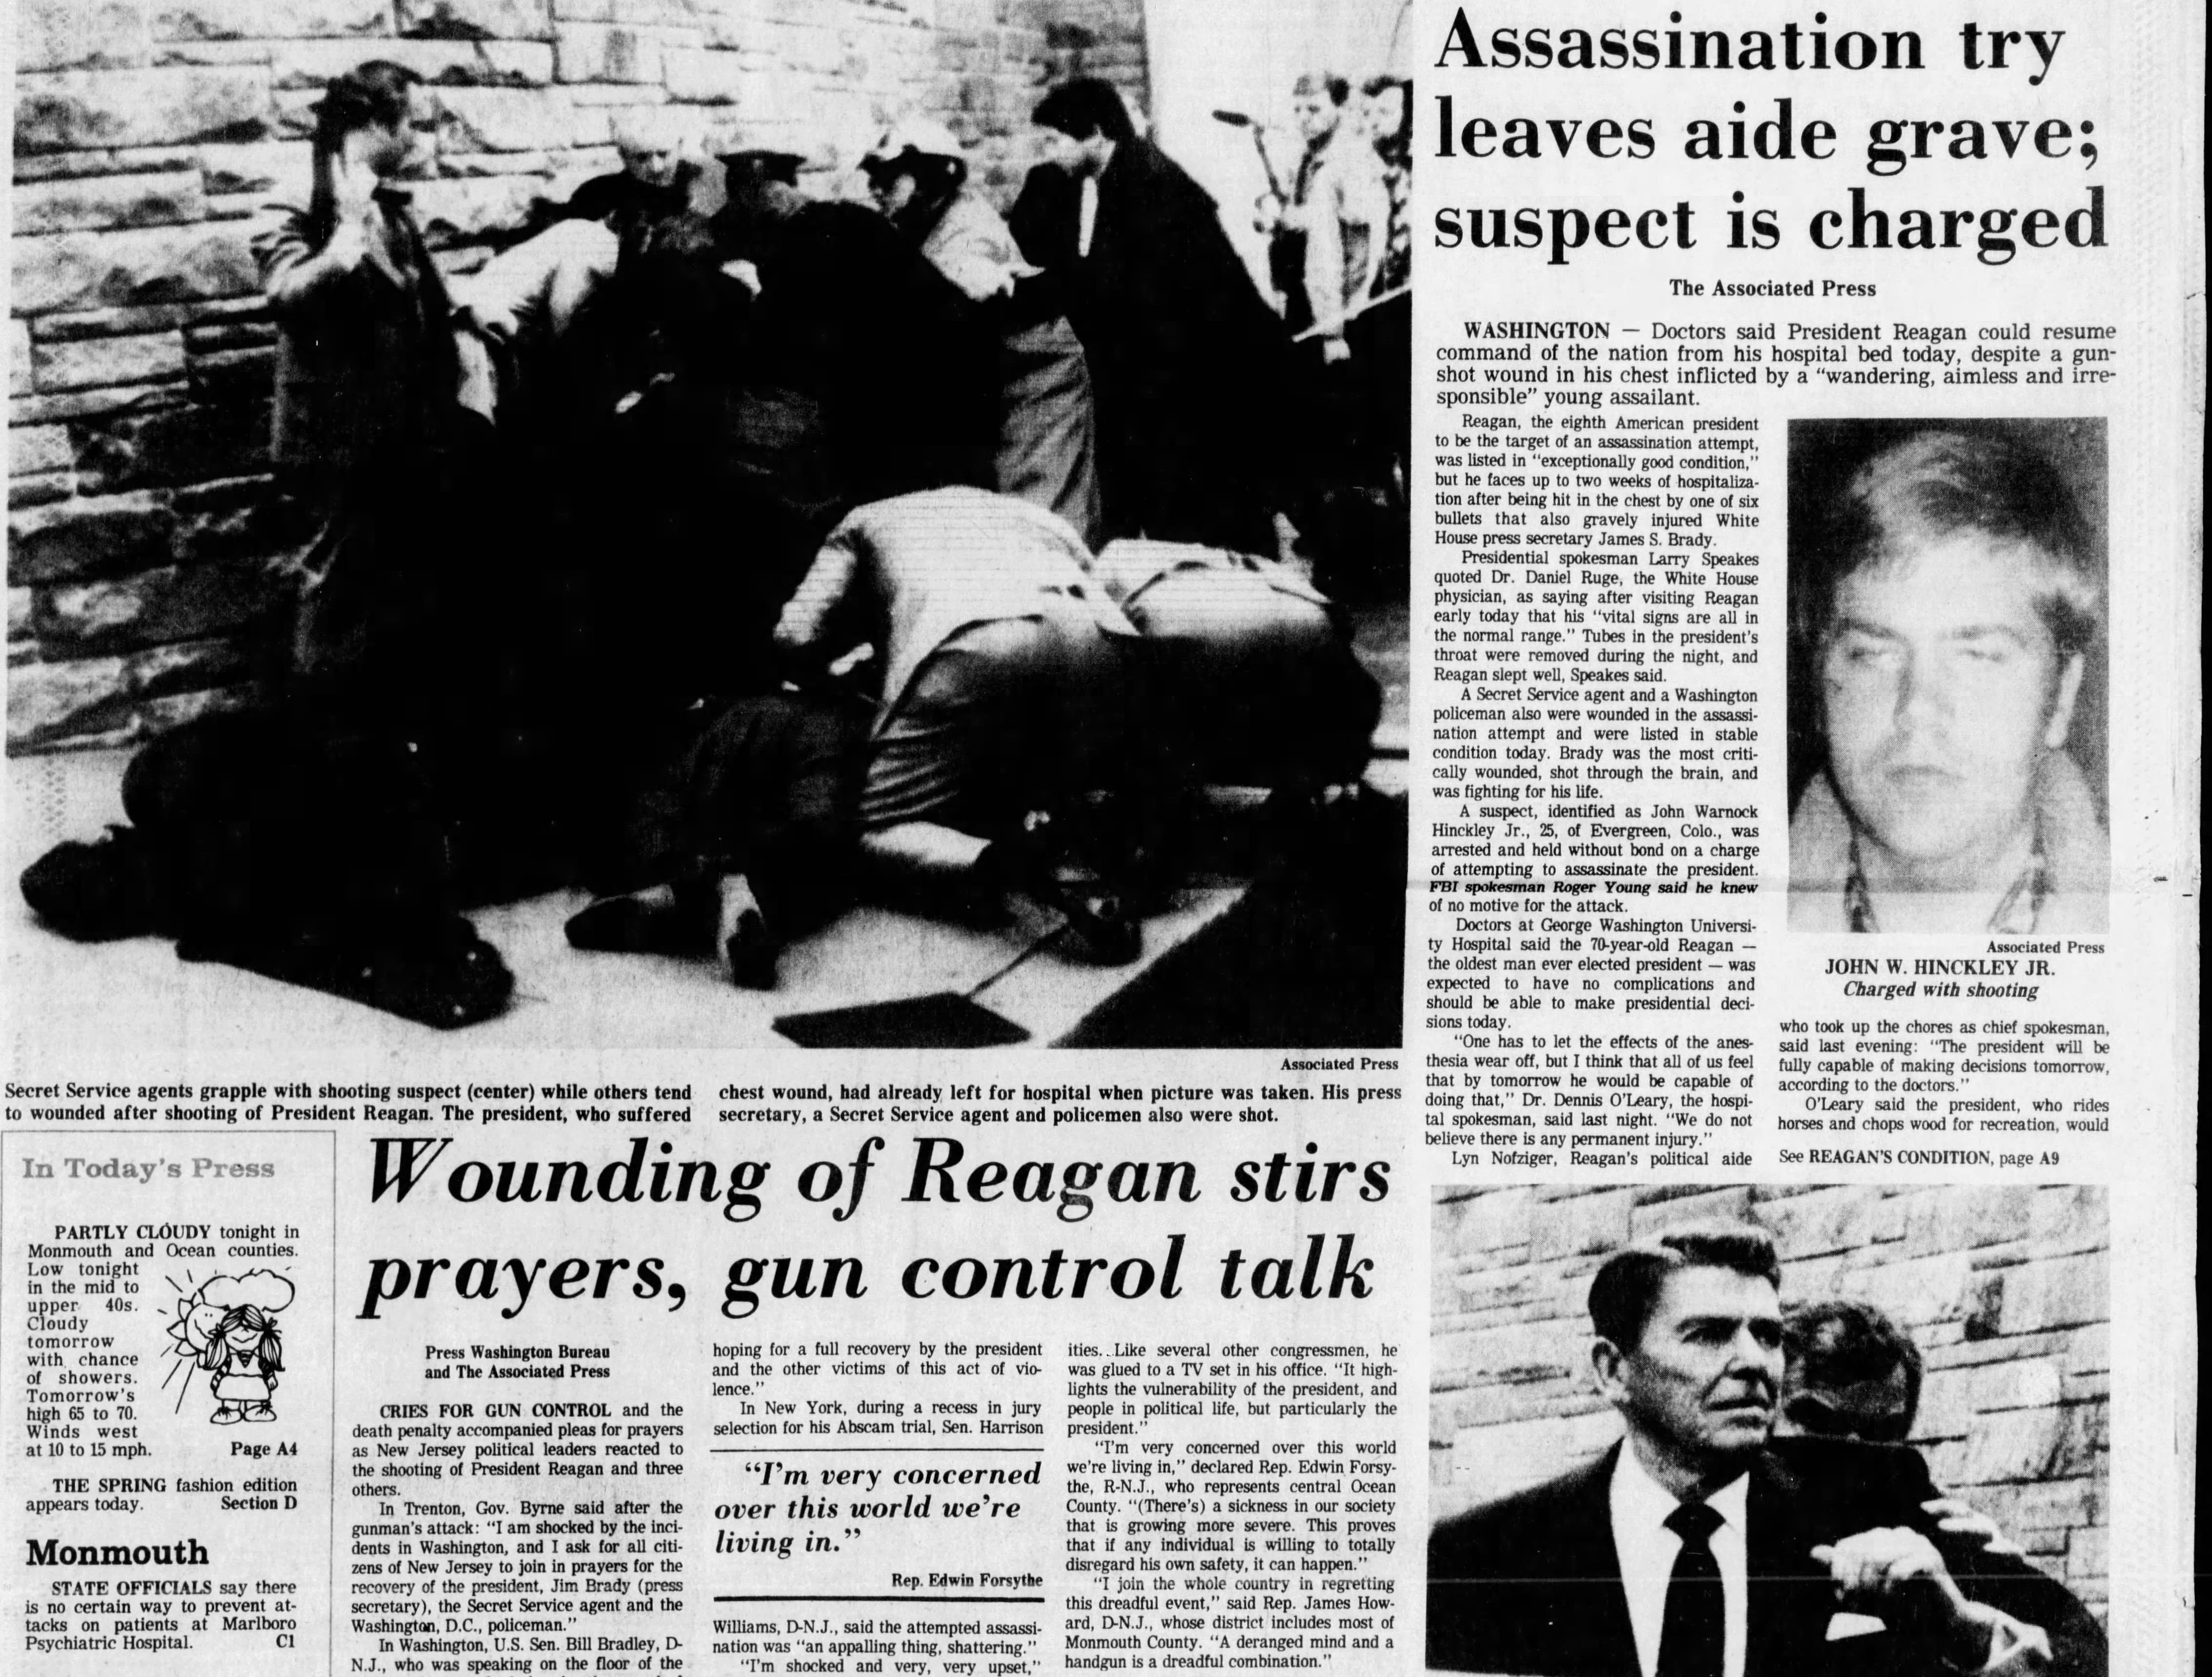 The nation narrowly avoids another presidential assassination when President Ronald Reagan survives but is seriously wounded by a lone gunman outside a Washington, D.C. hotel, 69 days after taking office, in this edition from Tuesday, March 31, 1981.